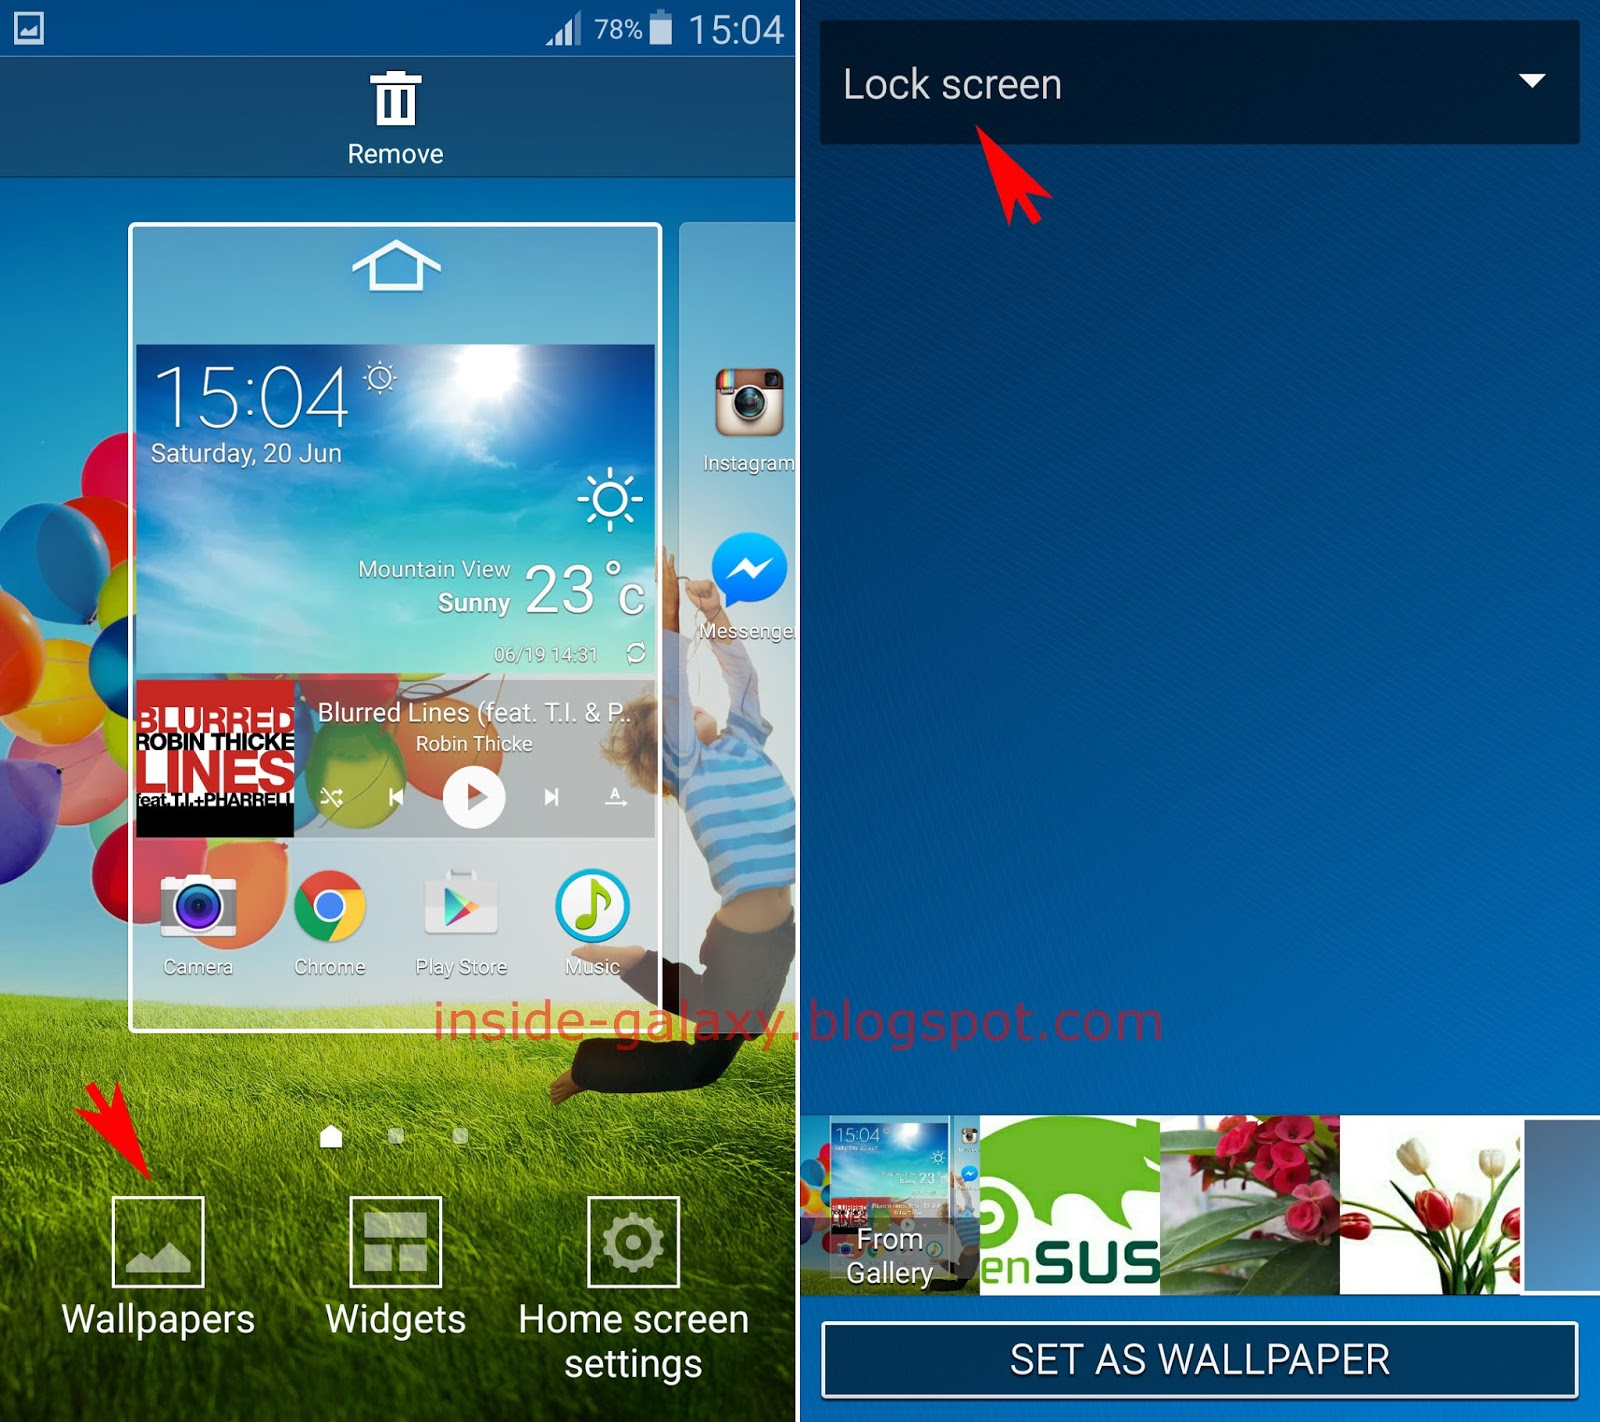 Inside Galaxy Samsung S4 How To Change Lock Screen Src